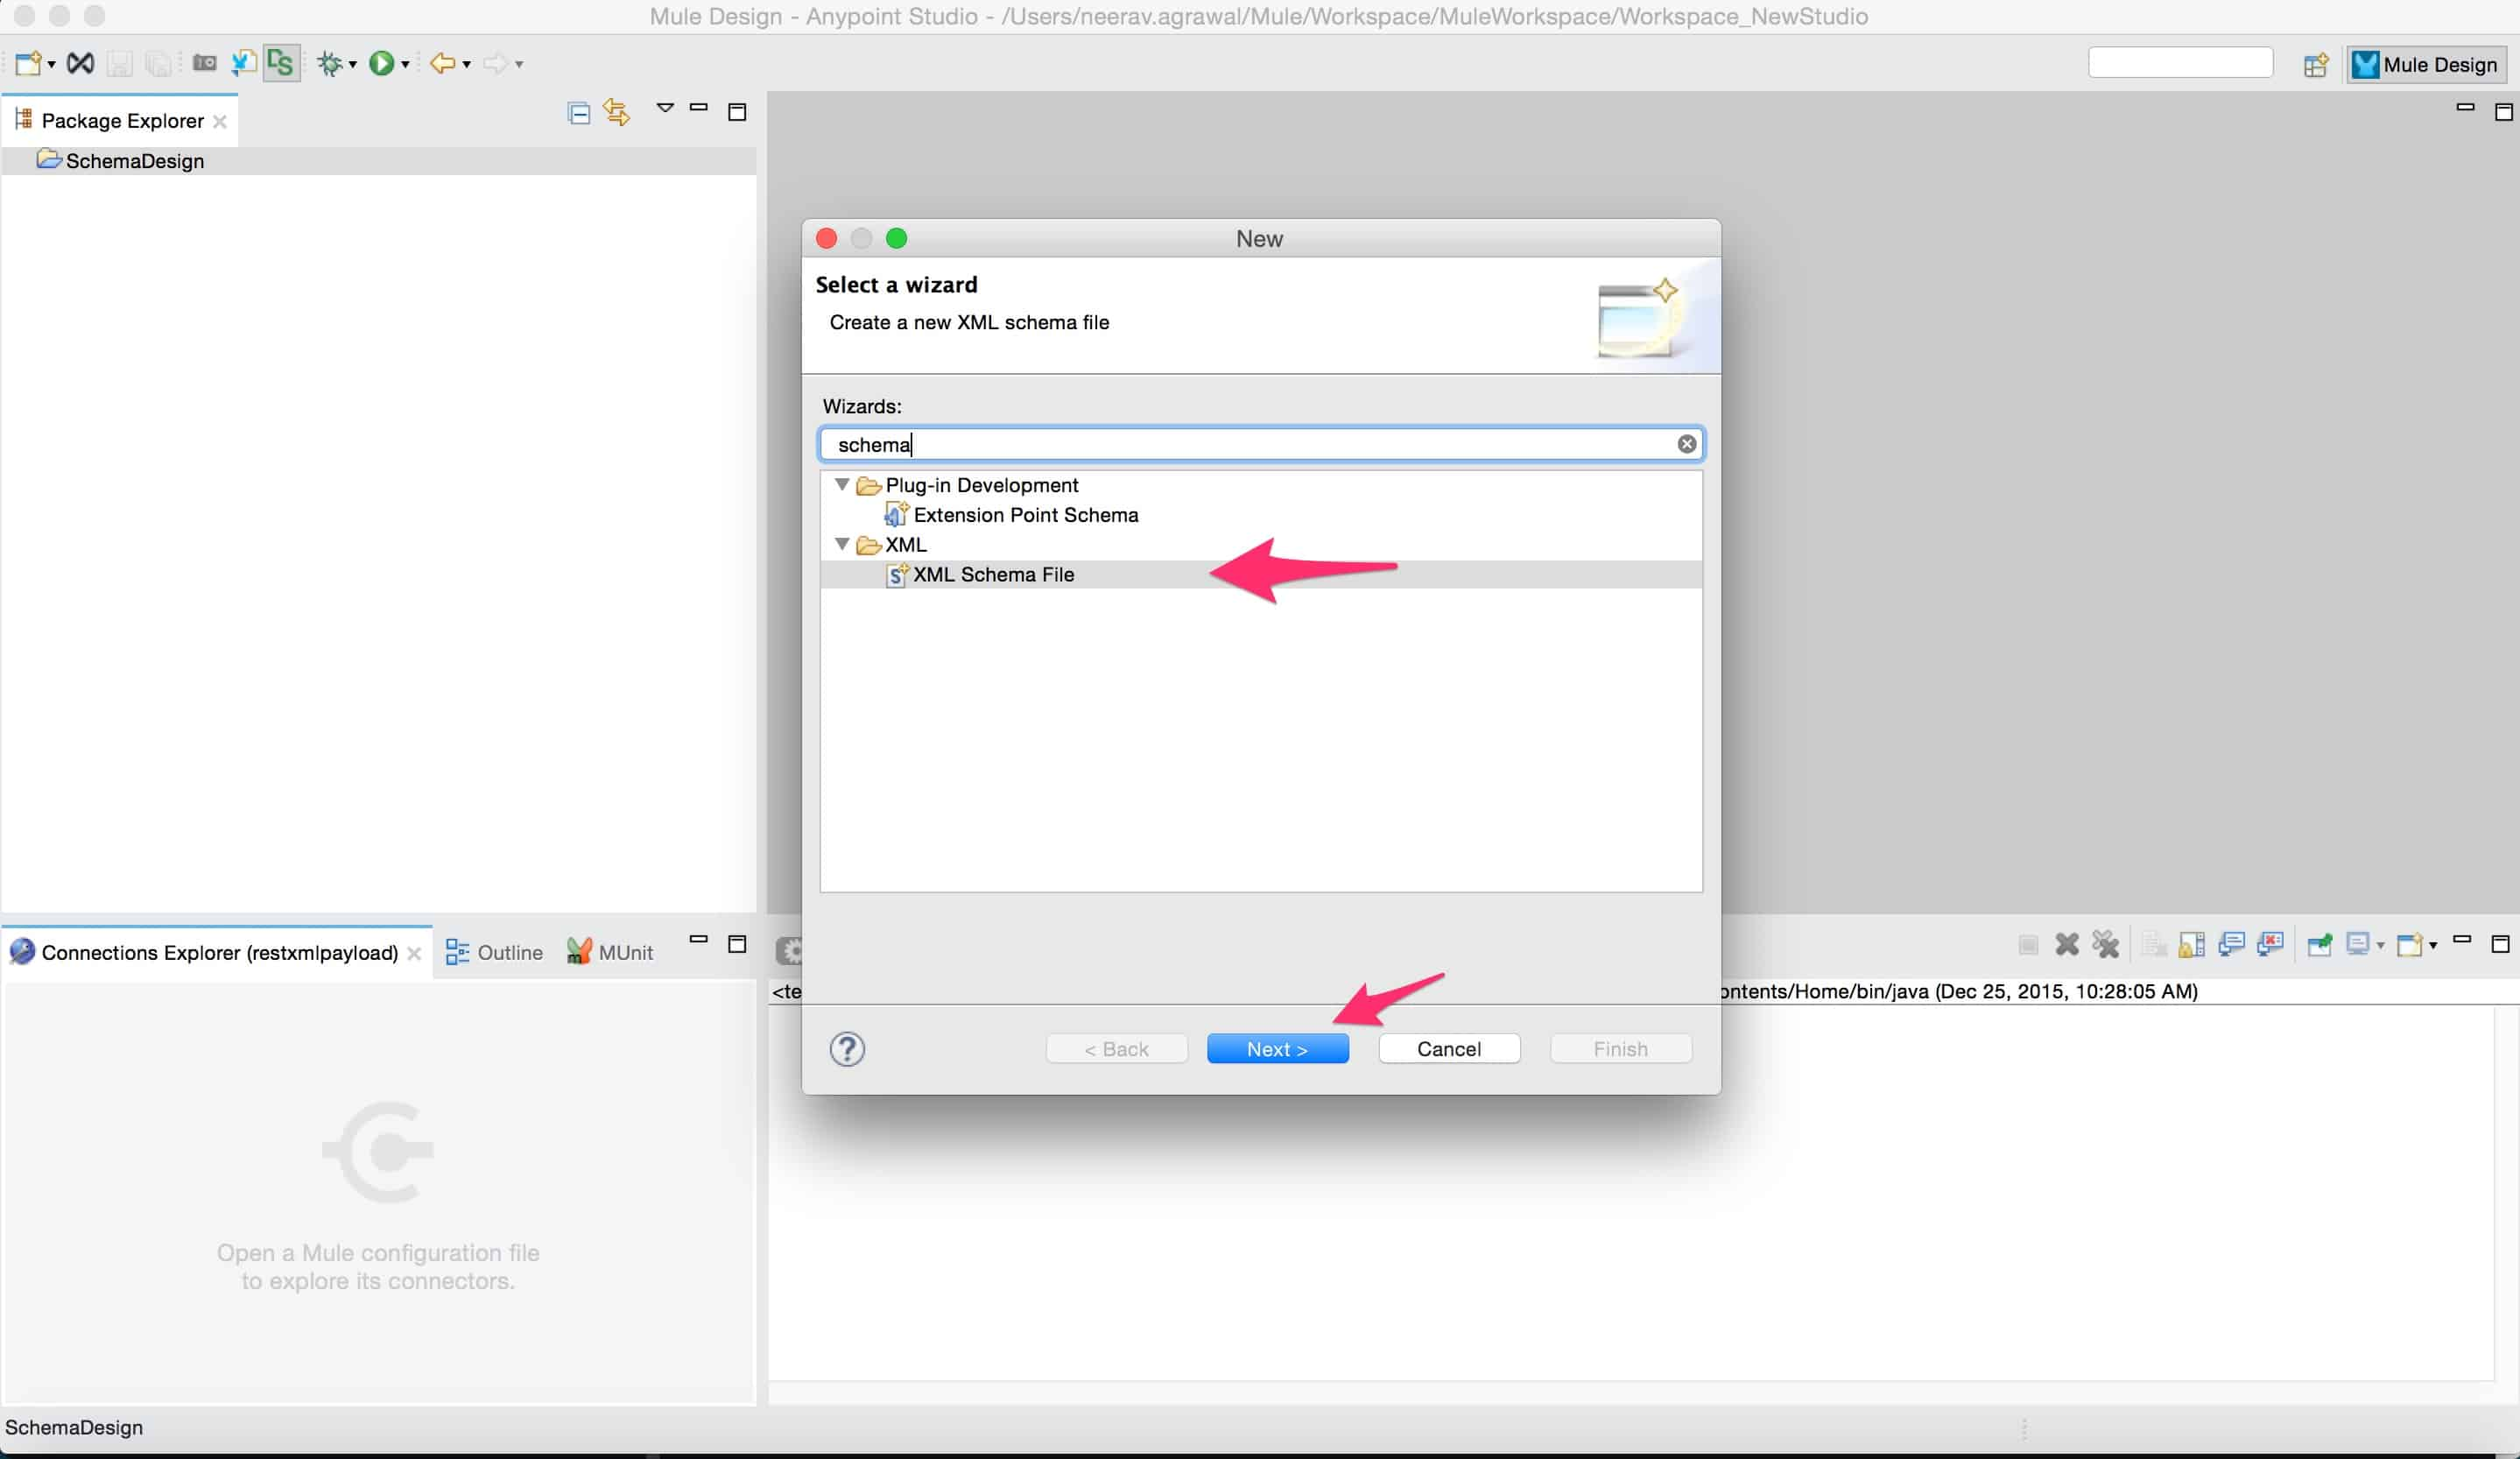 HowTo – Build a REST API with XML payload | MuleSoft Blog